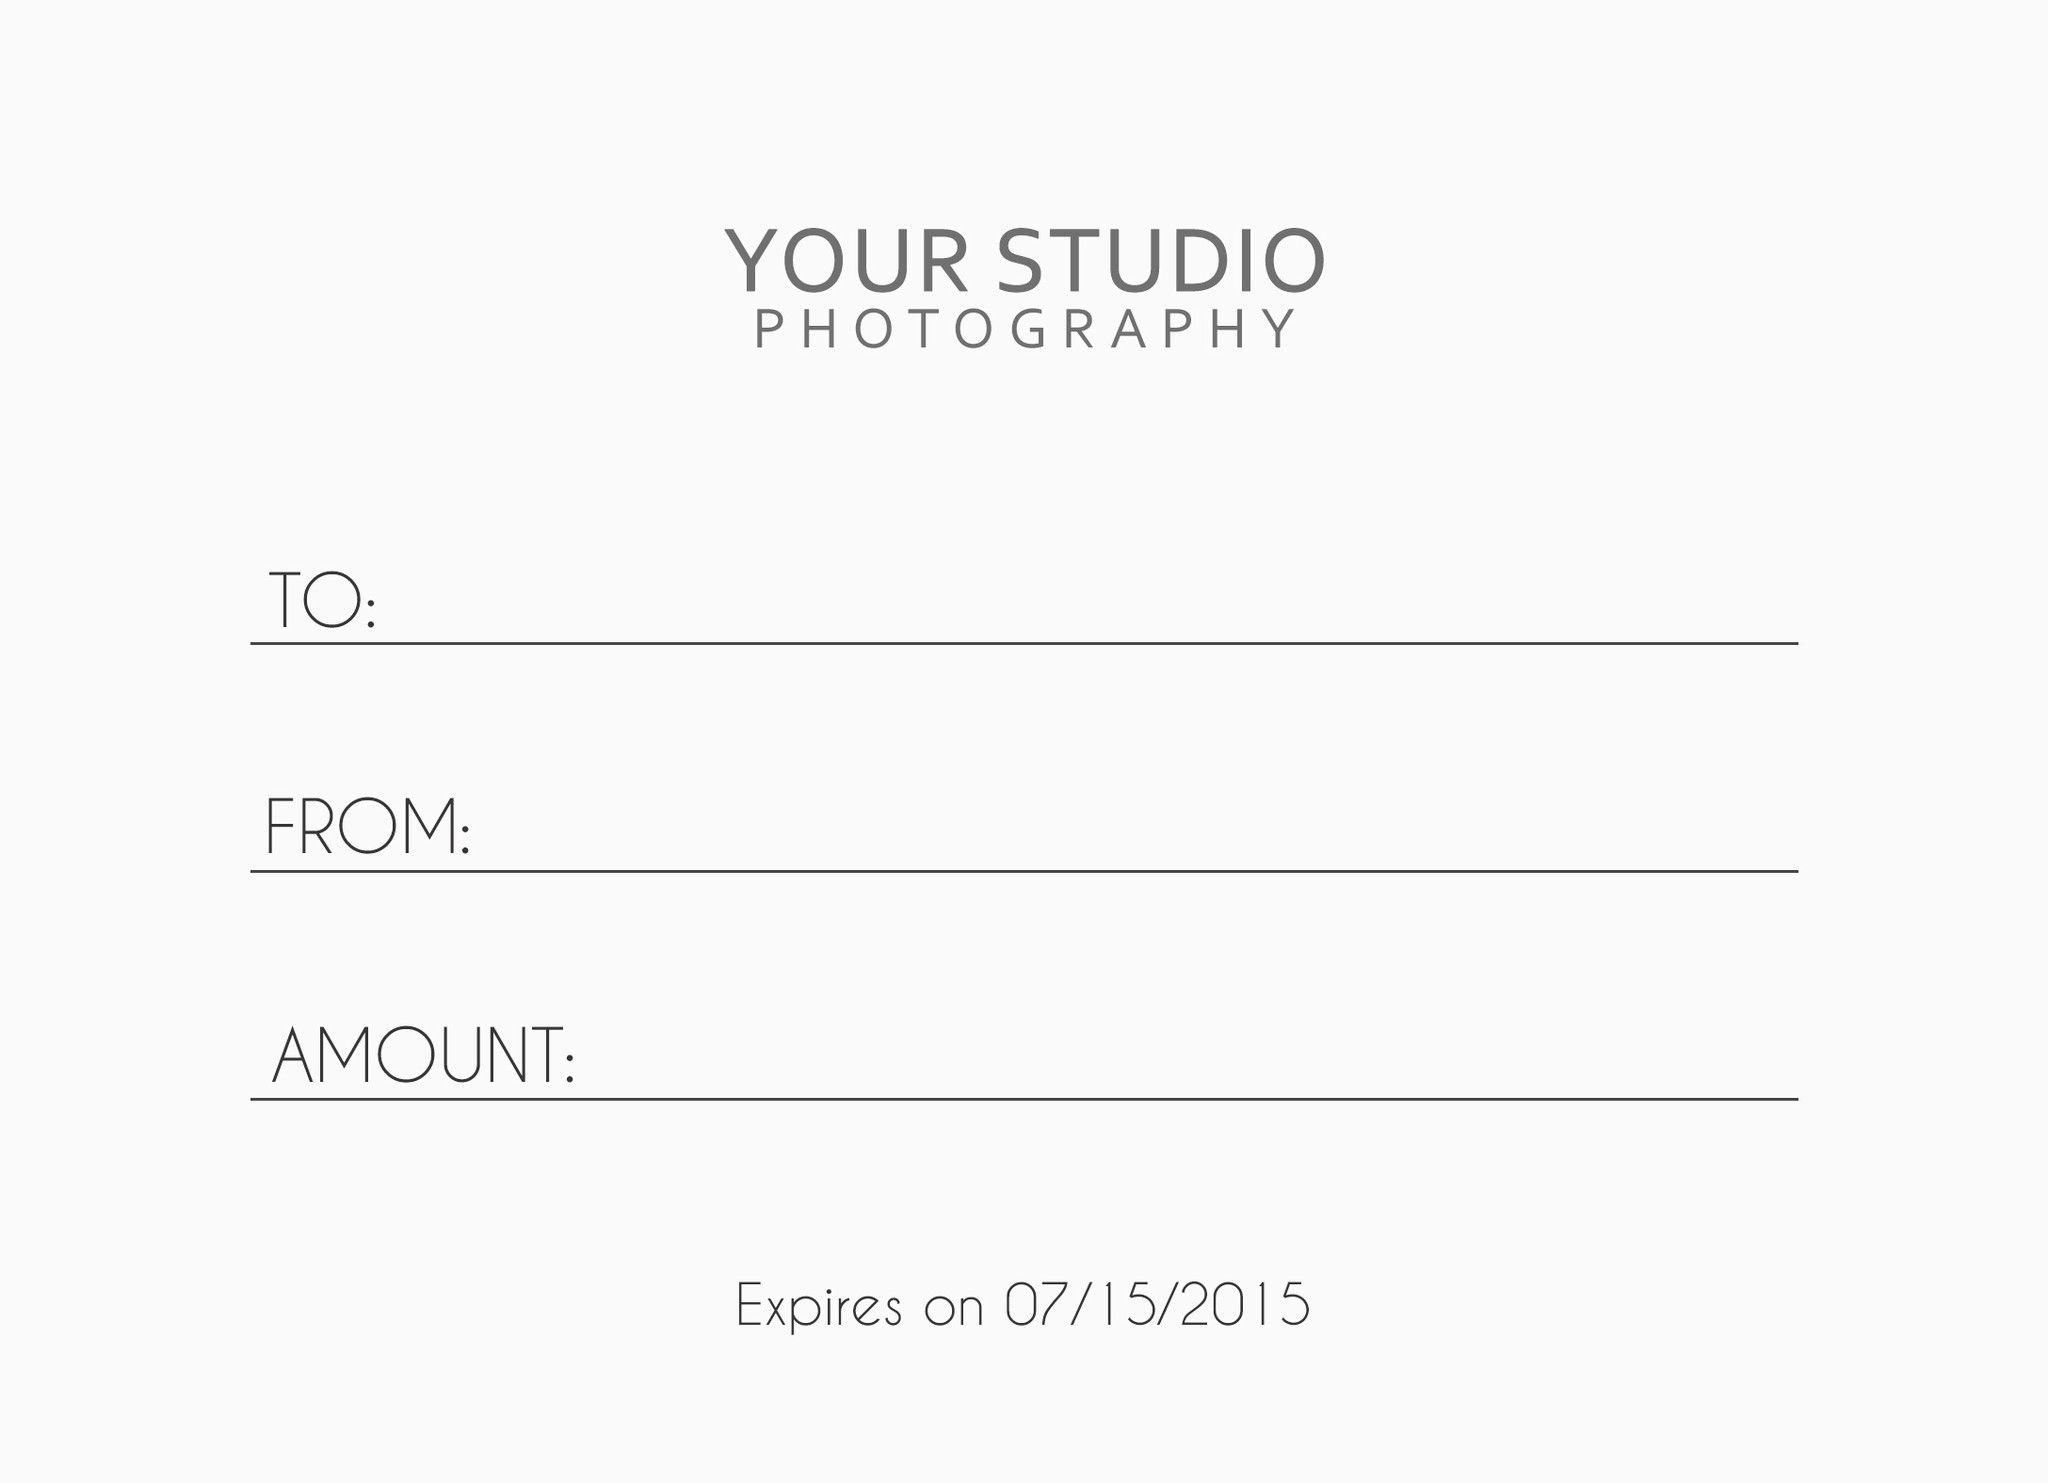 Photographer gift certificate photoshop template by posy prints photographer gift certificate photoshop template by posy prints design yadclub Image collections